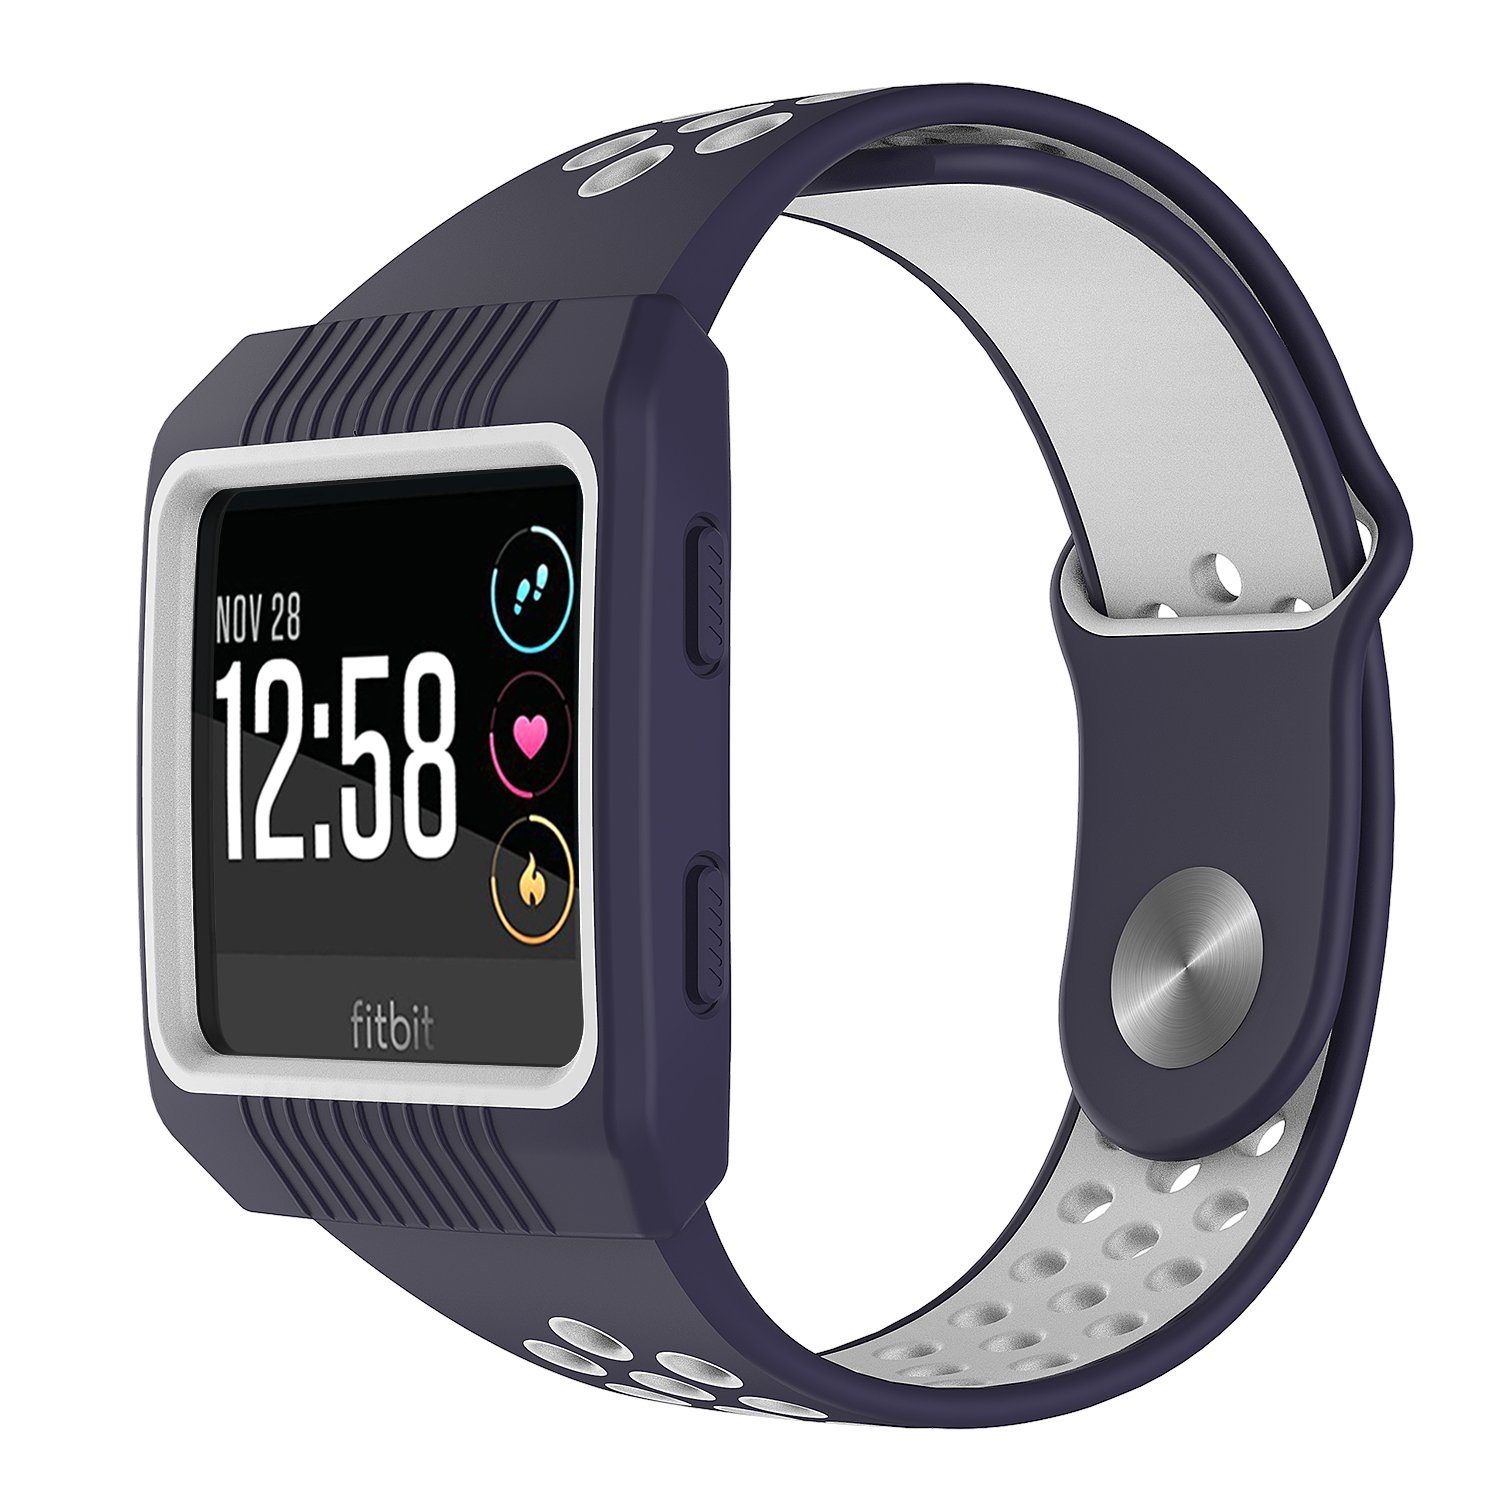 Fitbit Ionic Bands And Case,MYRIANN Accessories Set With Silicone Sport Band And Protective Case Cover for Fitbit Ionic Smart Watch (Navy Blue/White, ...